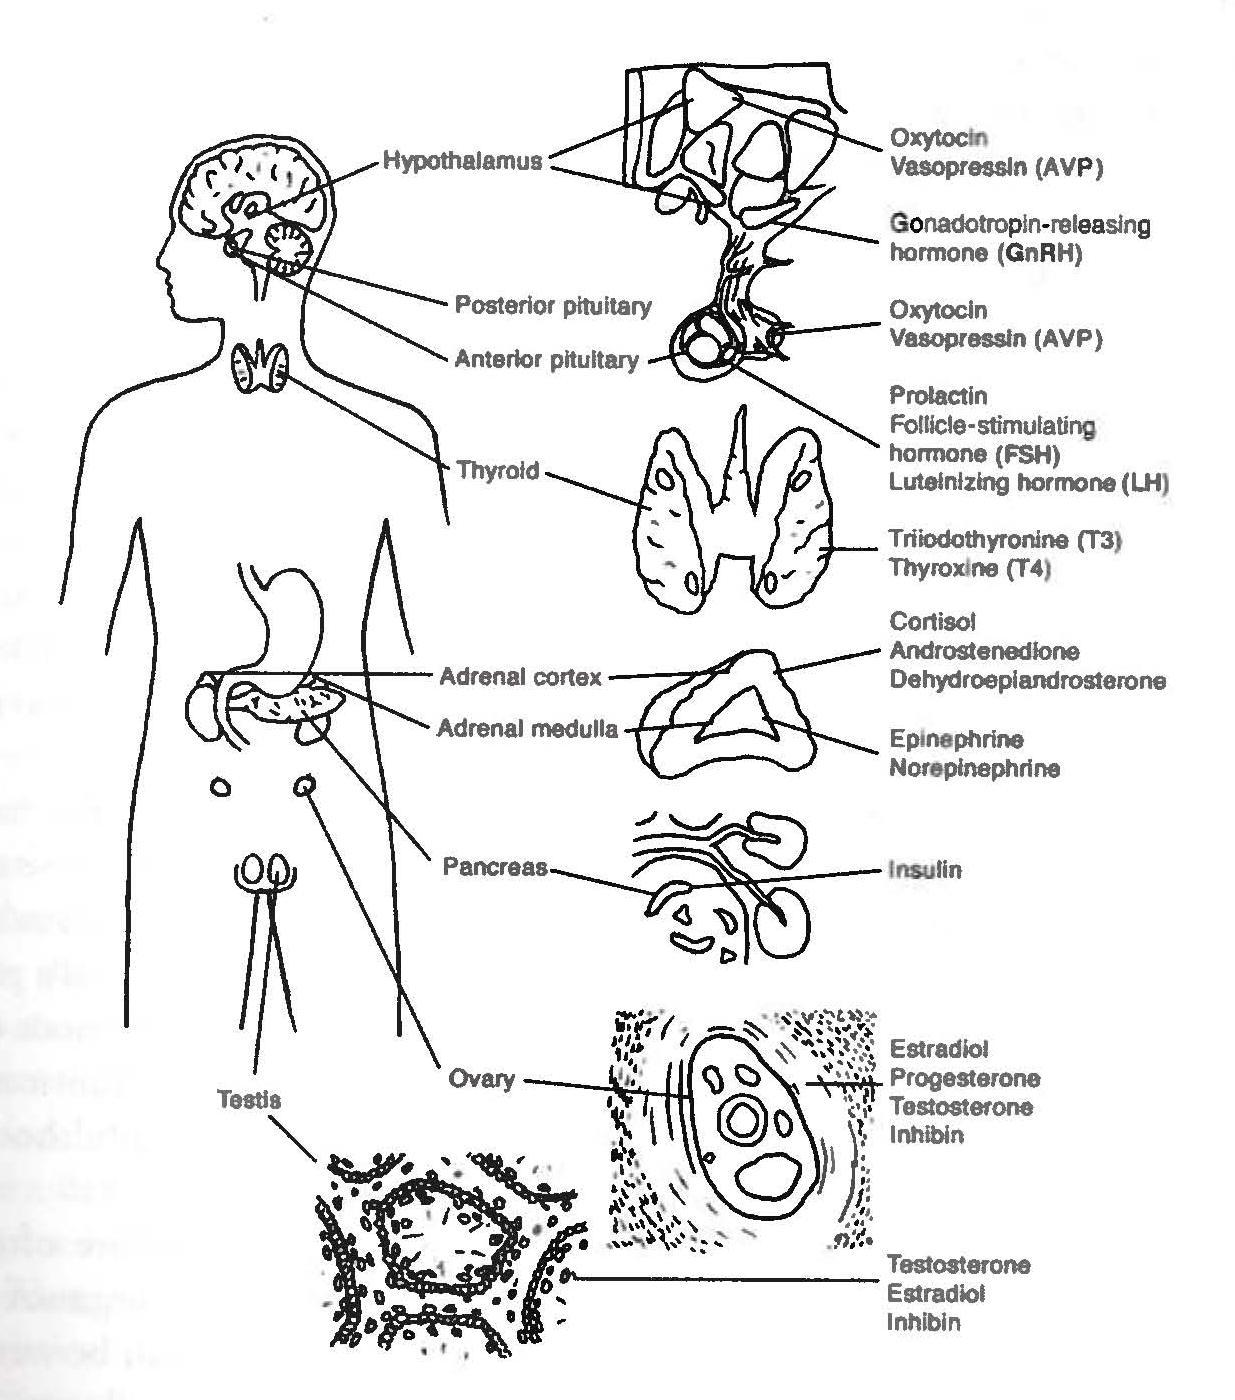 endocrine system unlabeled diagram ModernHealcomNervous System Diagram Labeled And Unlabeled